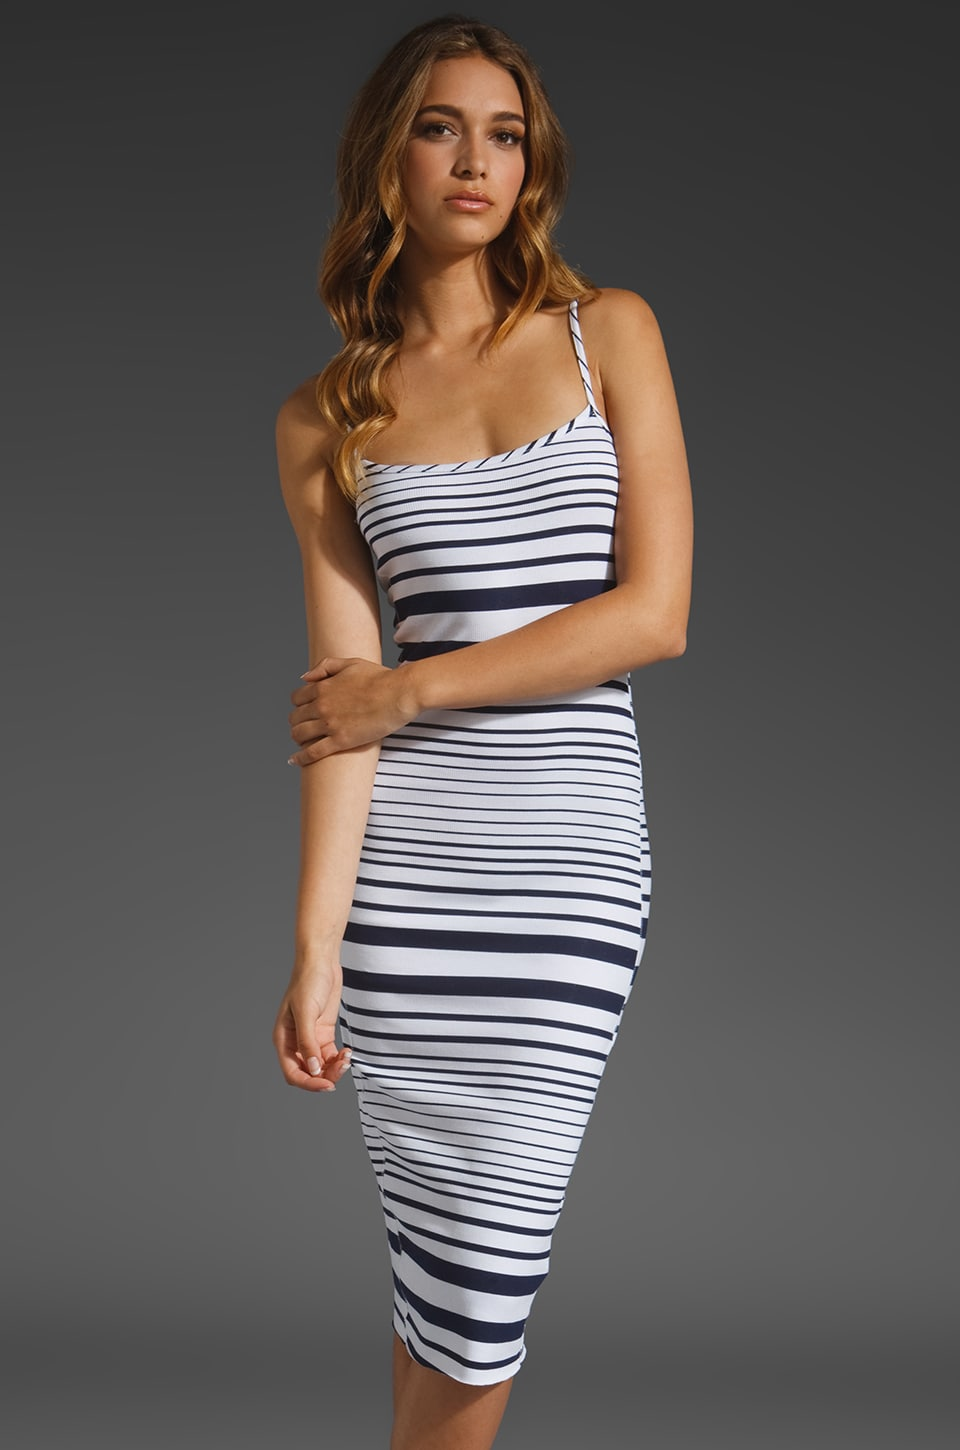 dolan T-Shirt Slip Dress in Pismo Navy Stripe